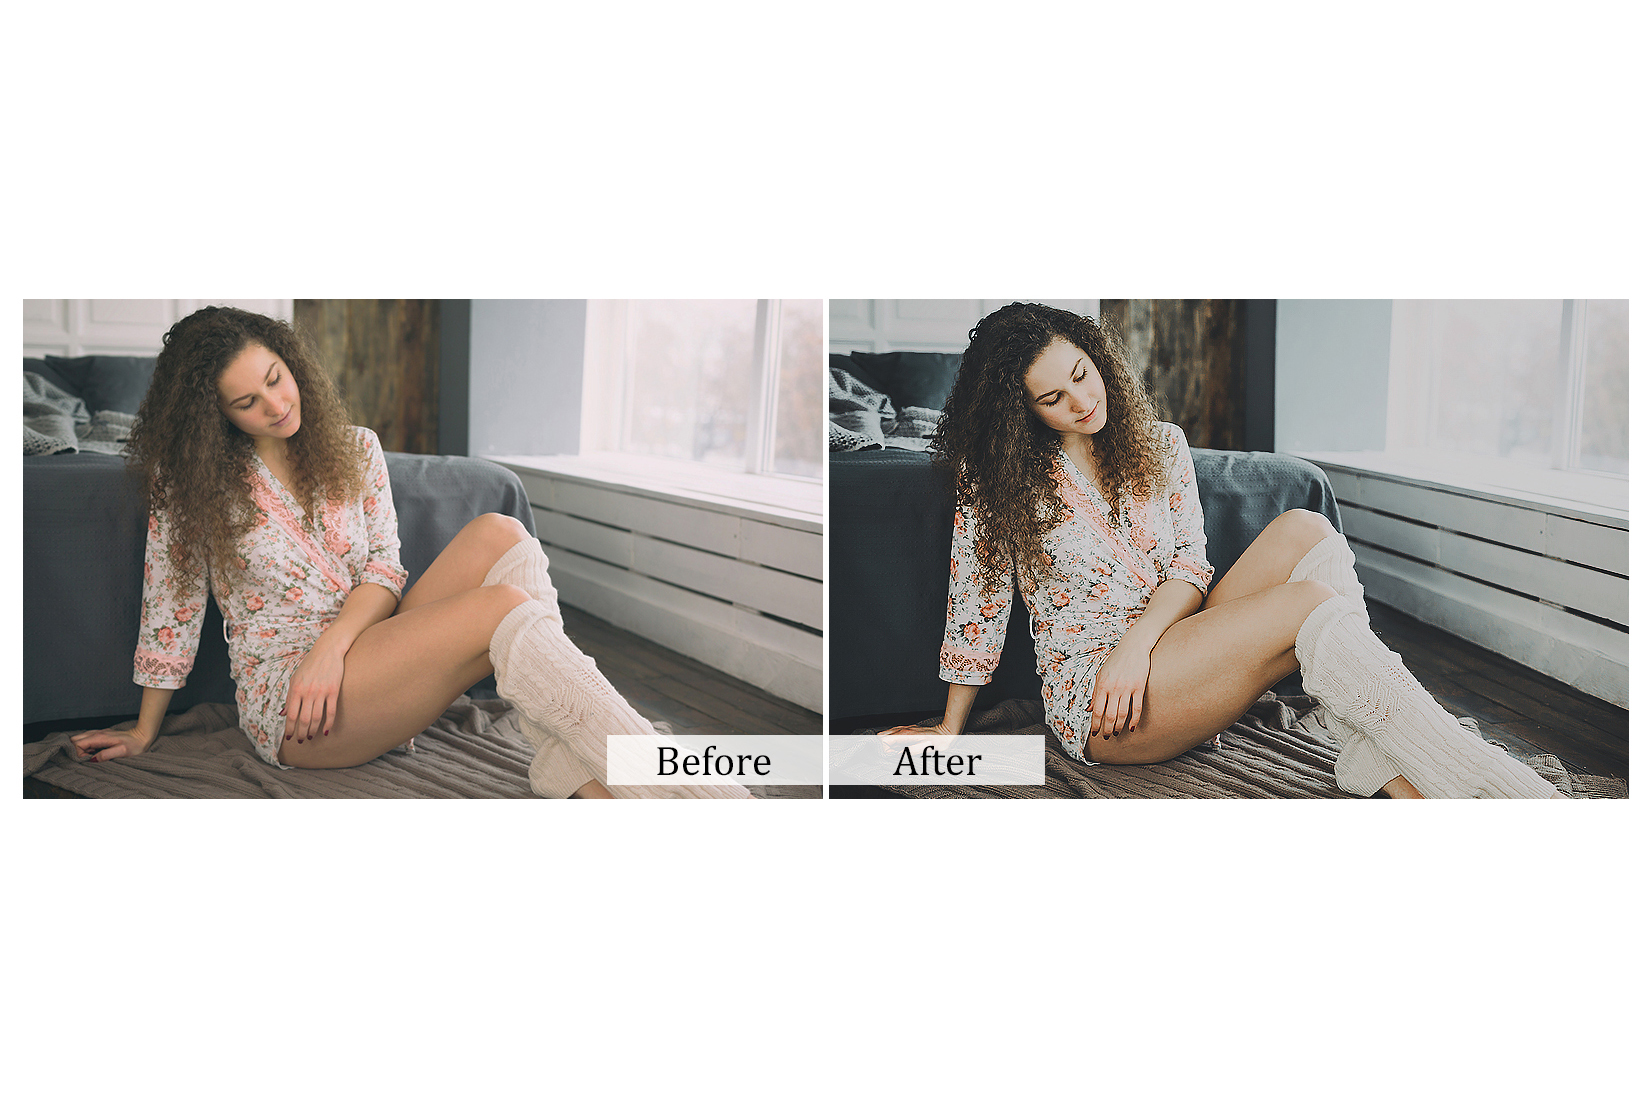 100 Indoor Fashion Photoshop Actions example image 3